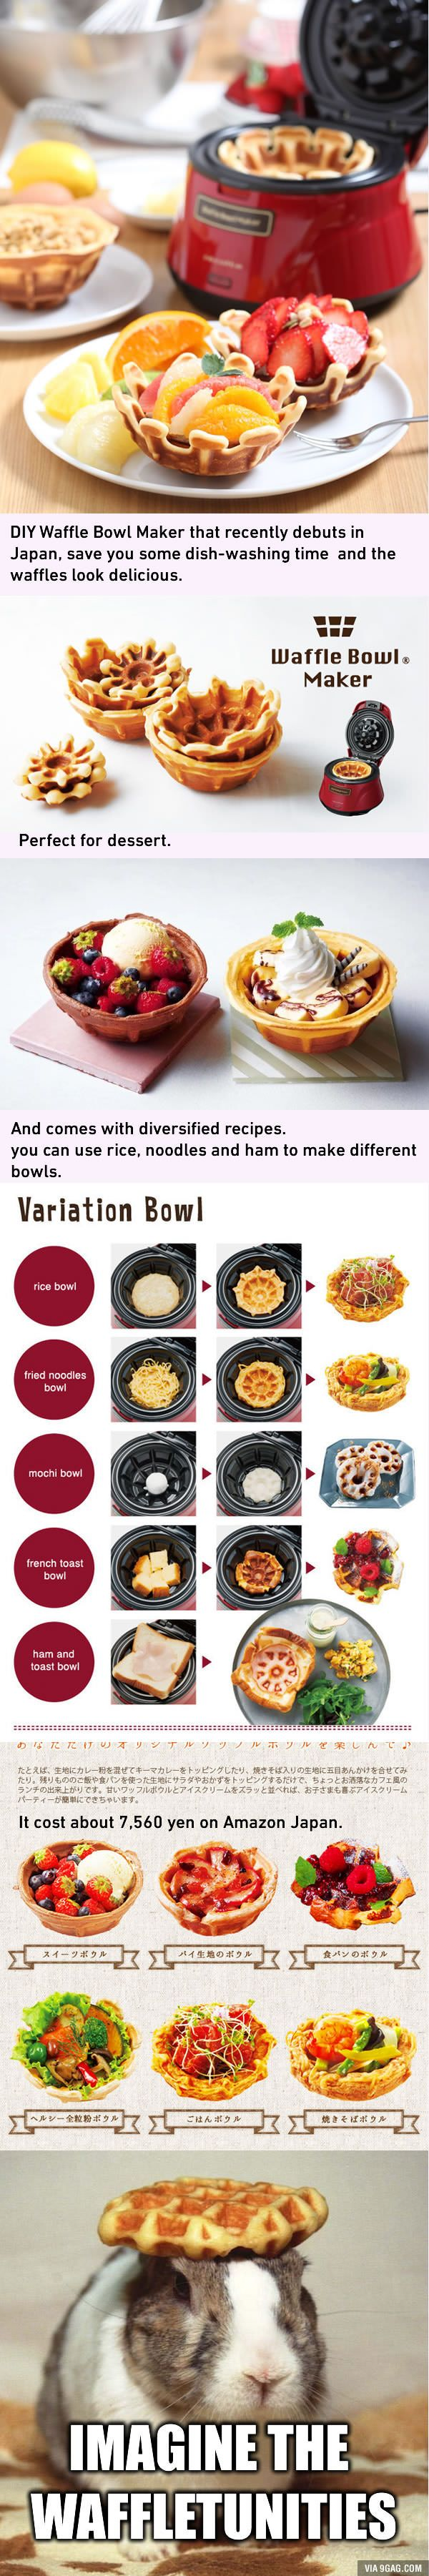 Imagine The Waffletunities! Japan Invented Waffle Bowl Maker - 9GAG